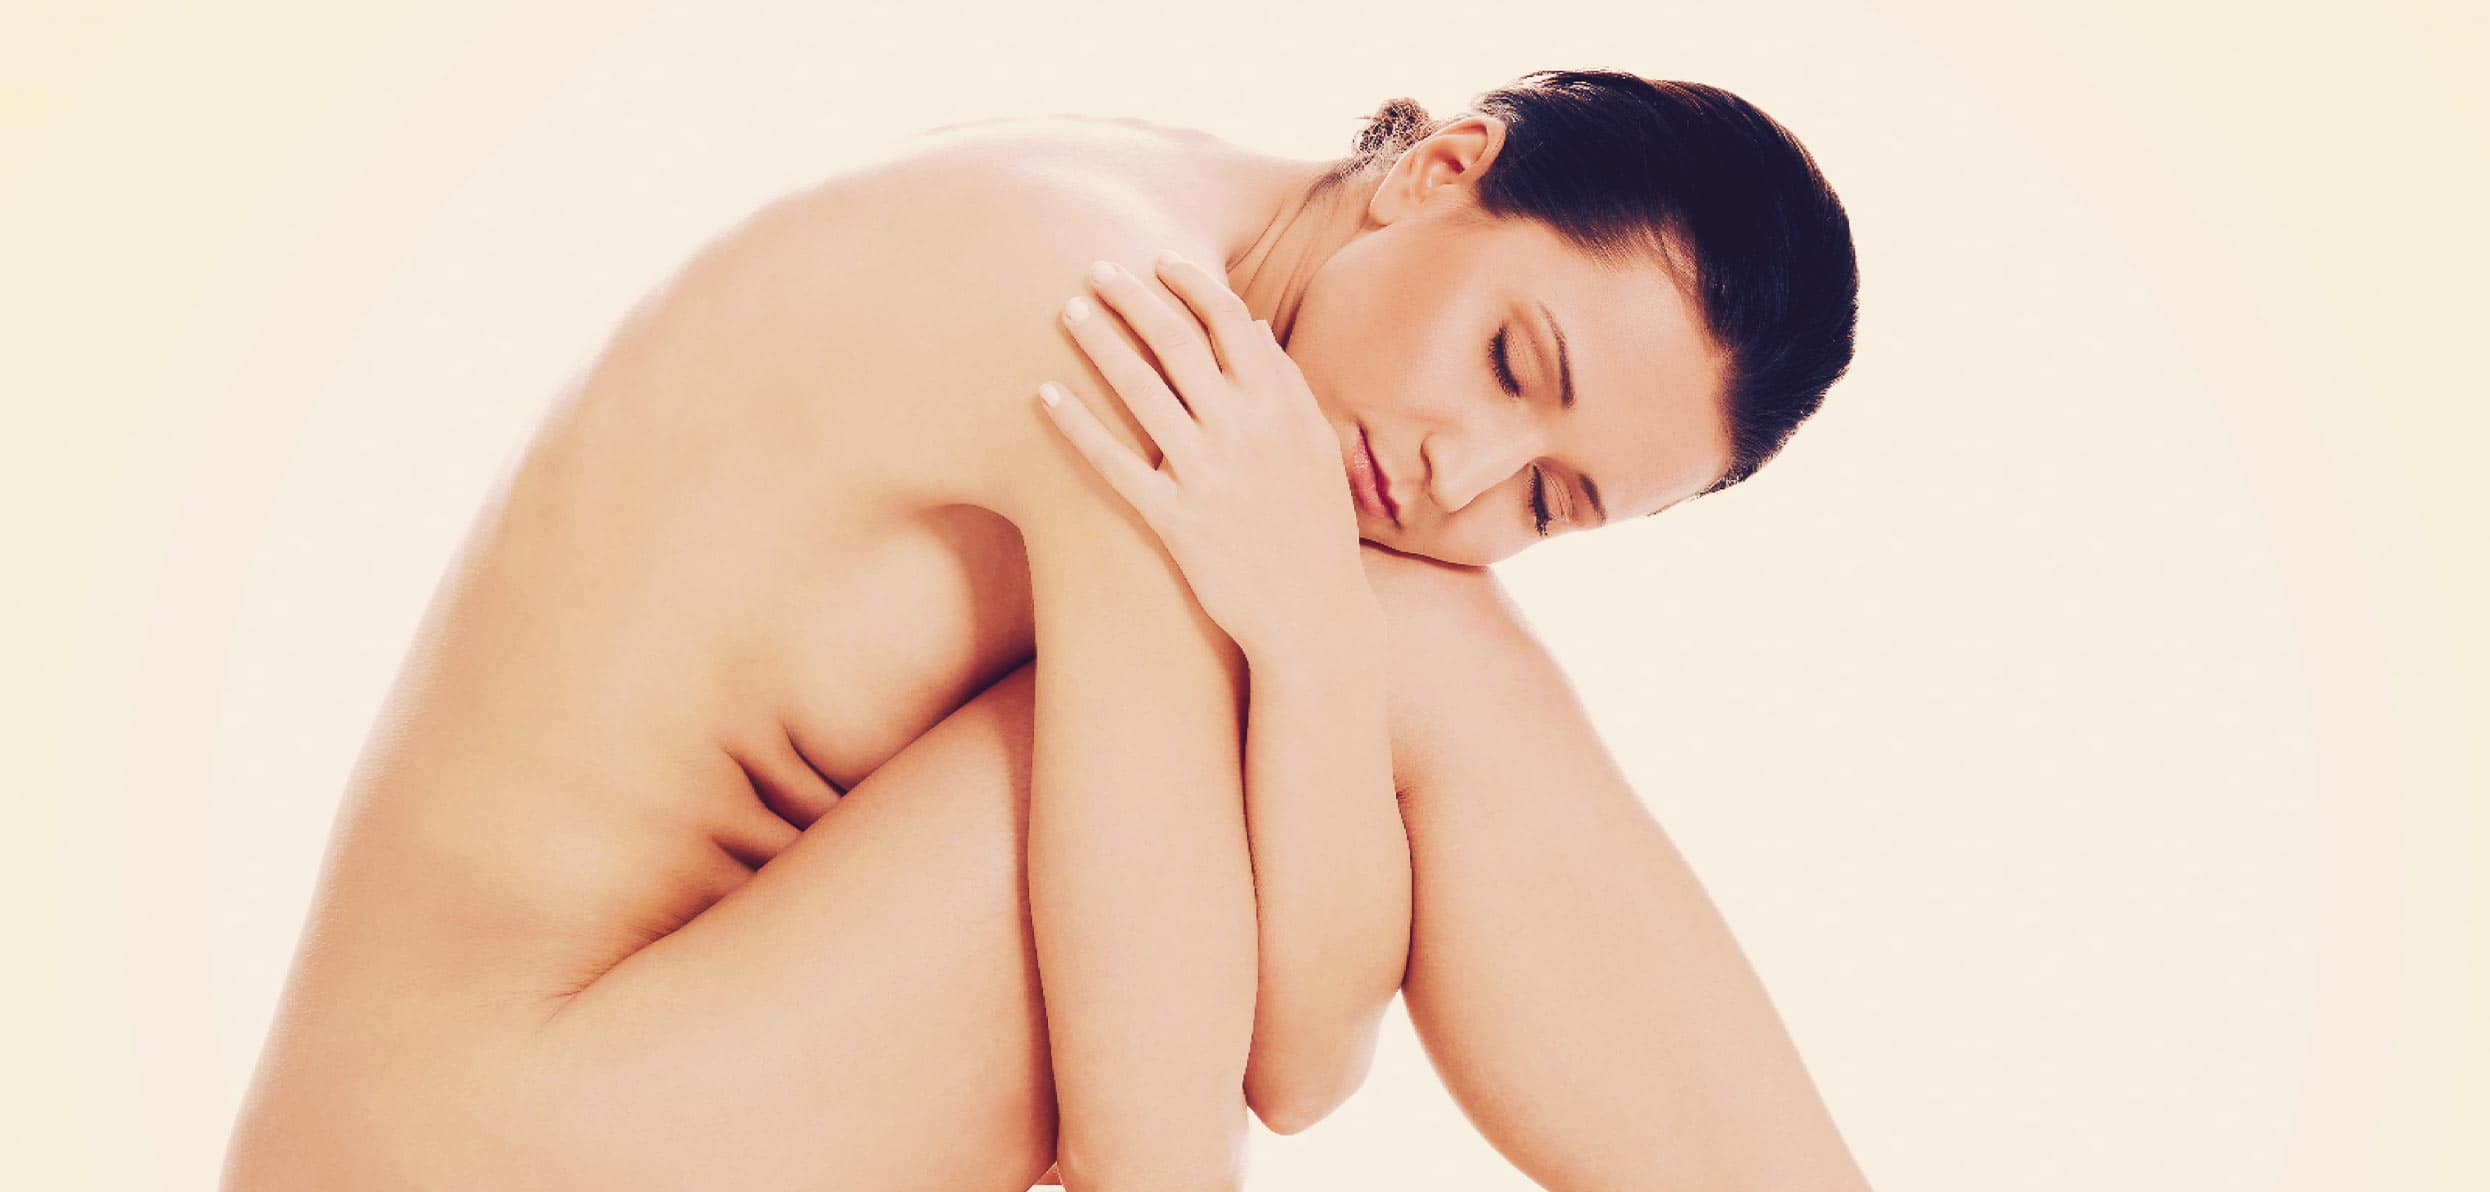 Naked woman sitting in a fetal position - hormonal weight gain and how to control it